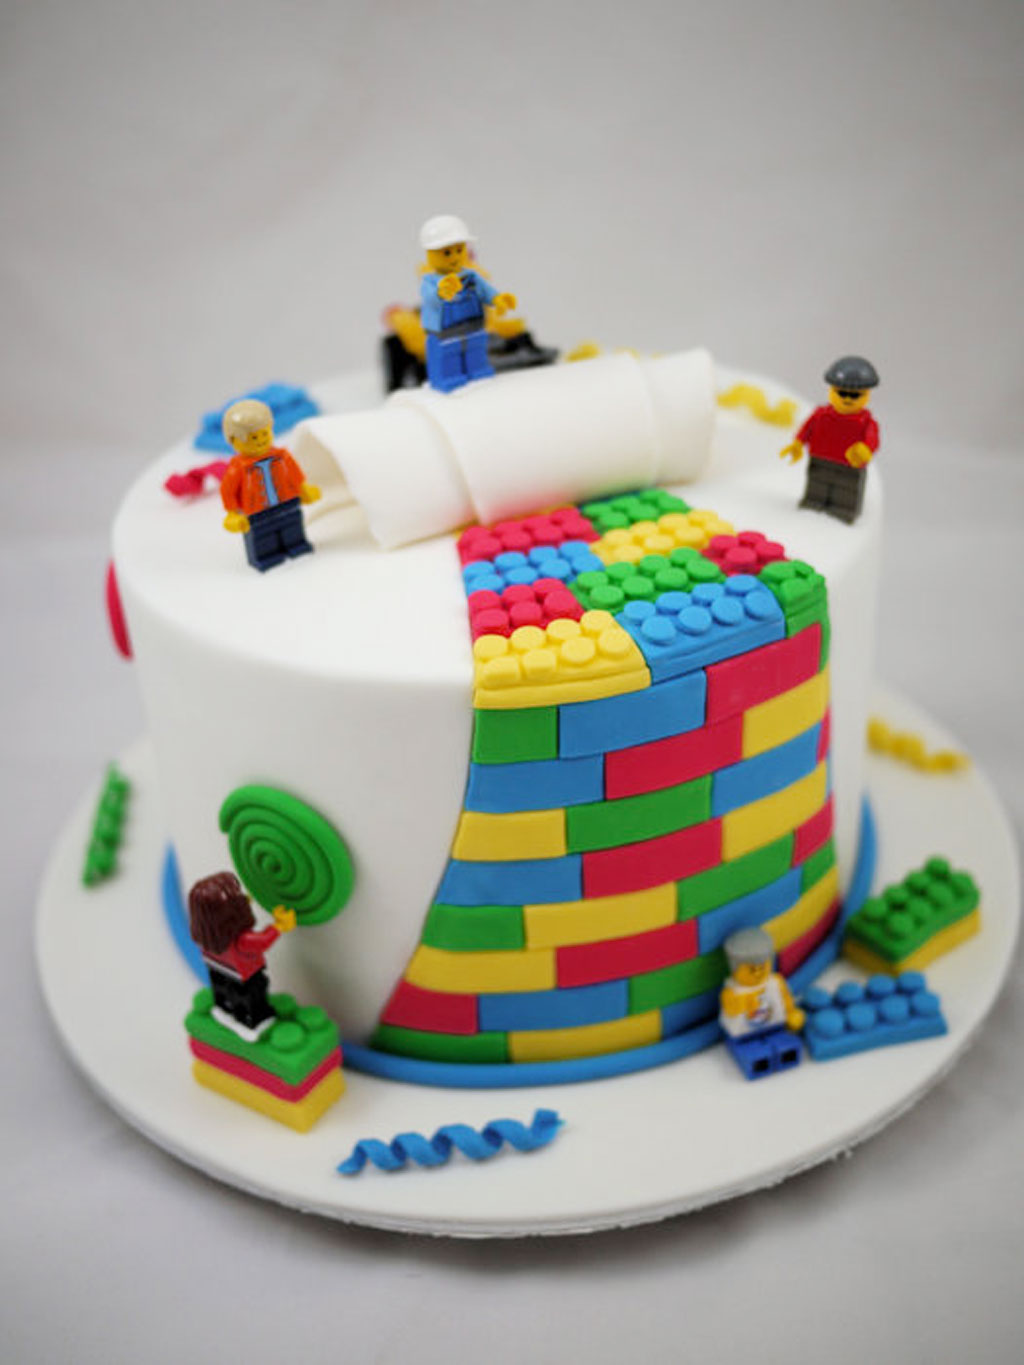 Cake Decorating Birthday Cakes : Lego Birthday Cake Decorating Birthday Cake - Cake Ideas ...